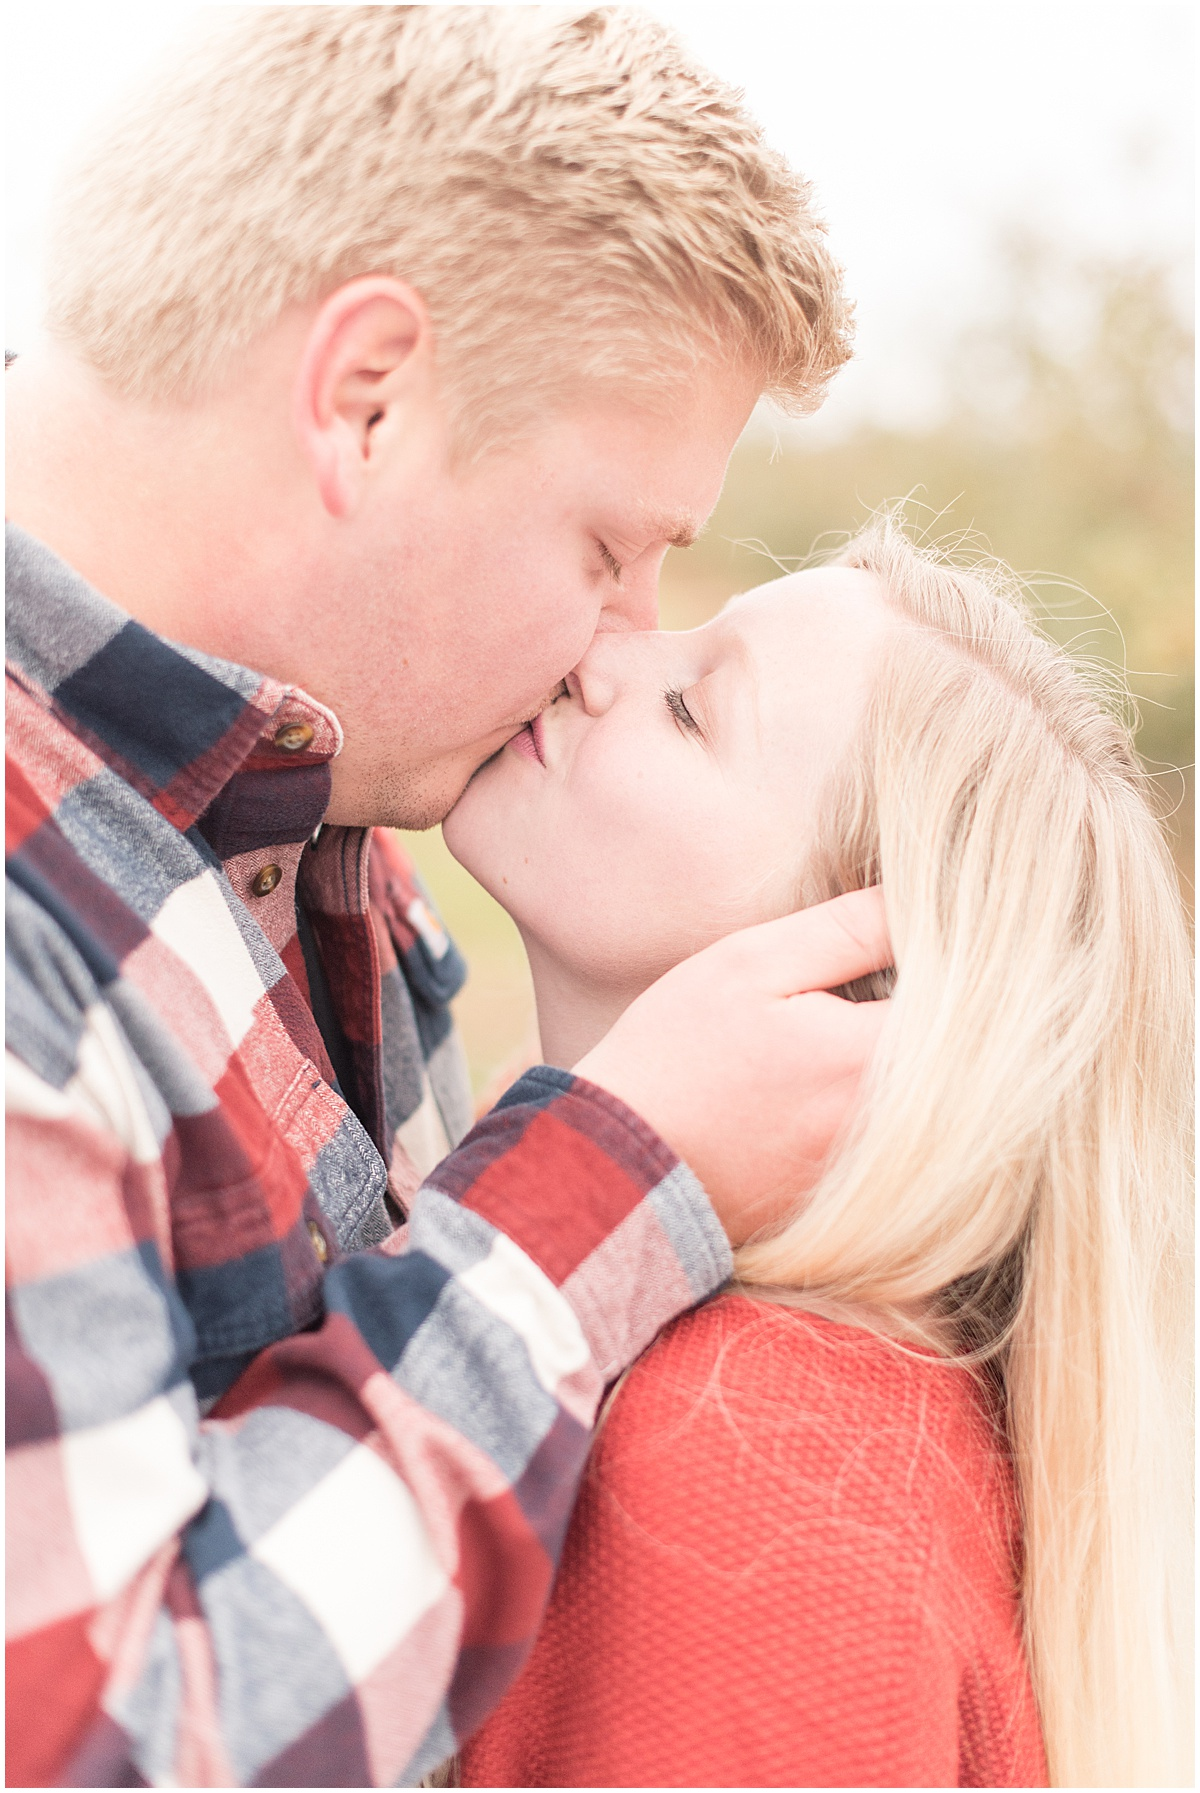 Tyler Van Wanzeele and Baileigh Fleming engagement photos at Wea Creek Orchard in Lafayette Indiana27.jpg